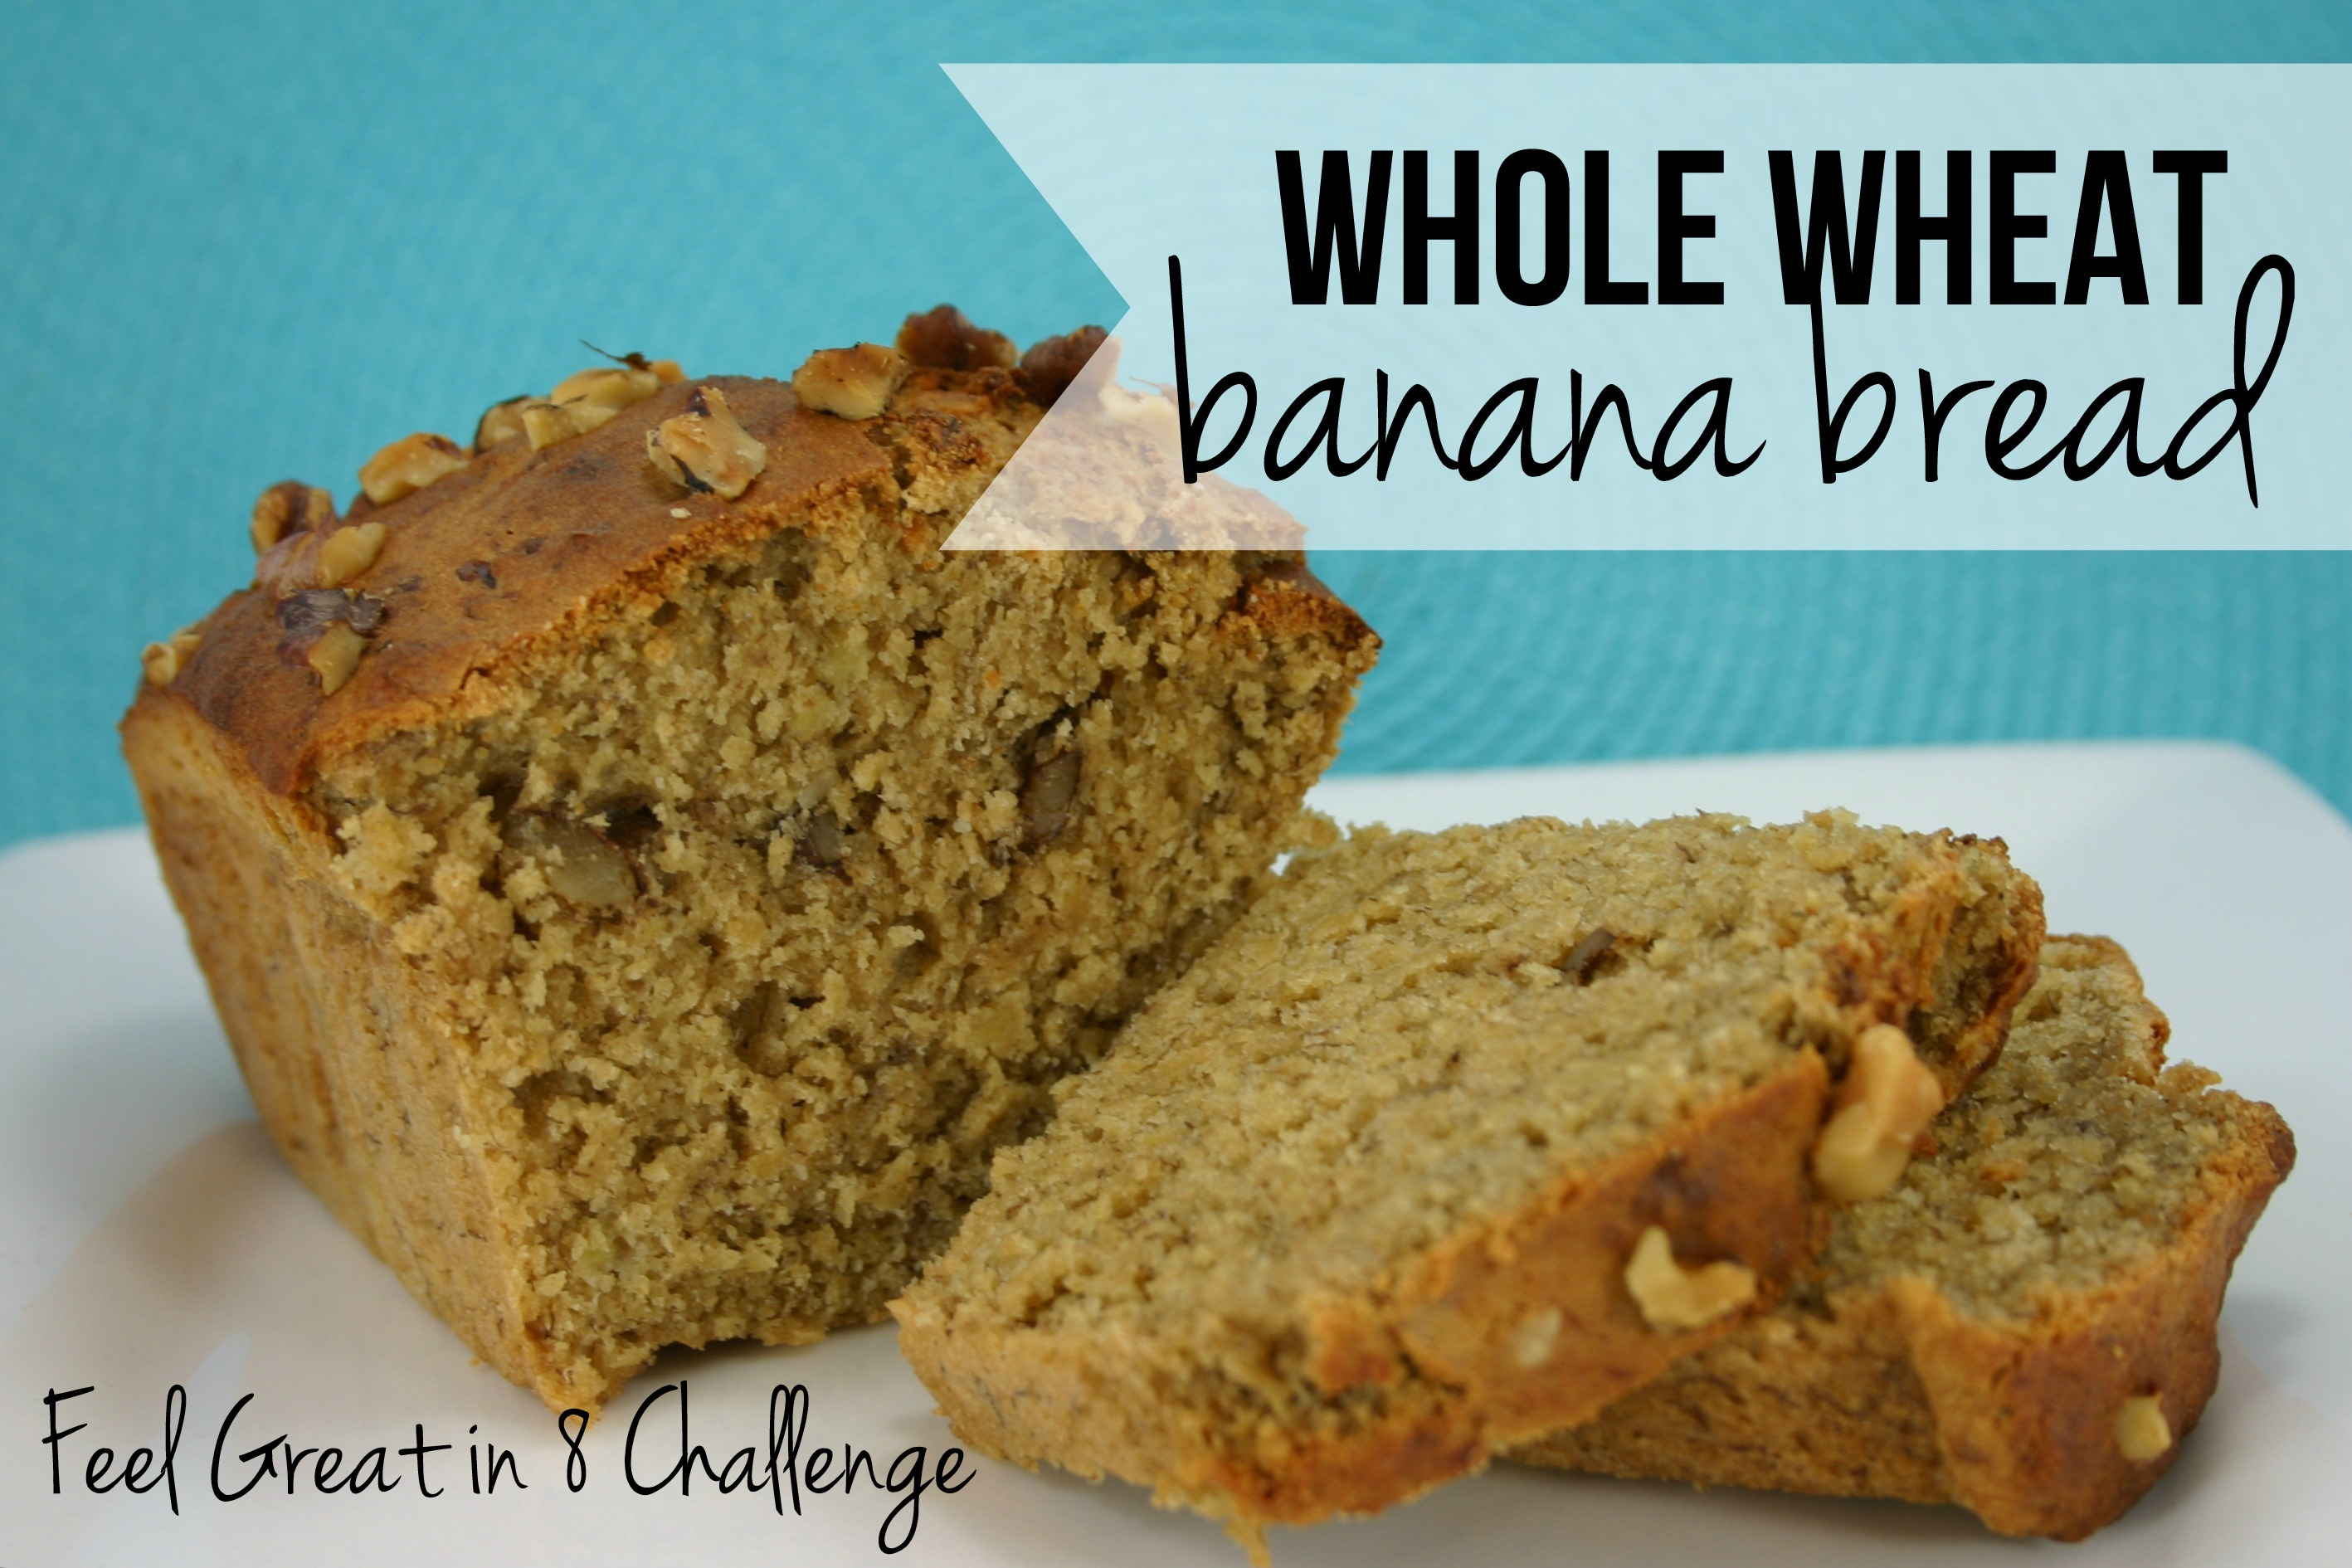 Whole wheat banana bread feel great in 8 blog healthy whole wheat banana bread feel great in 8 forumfinder Image collections